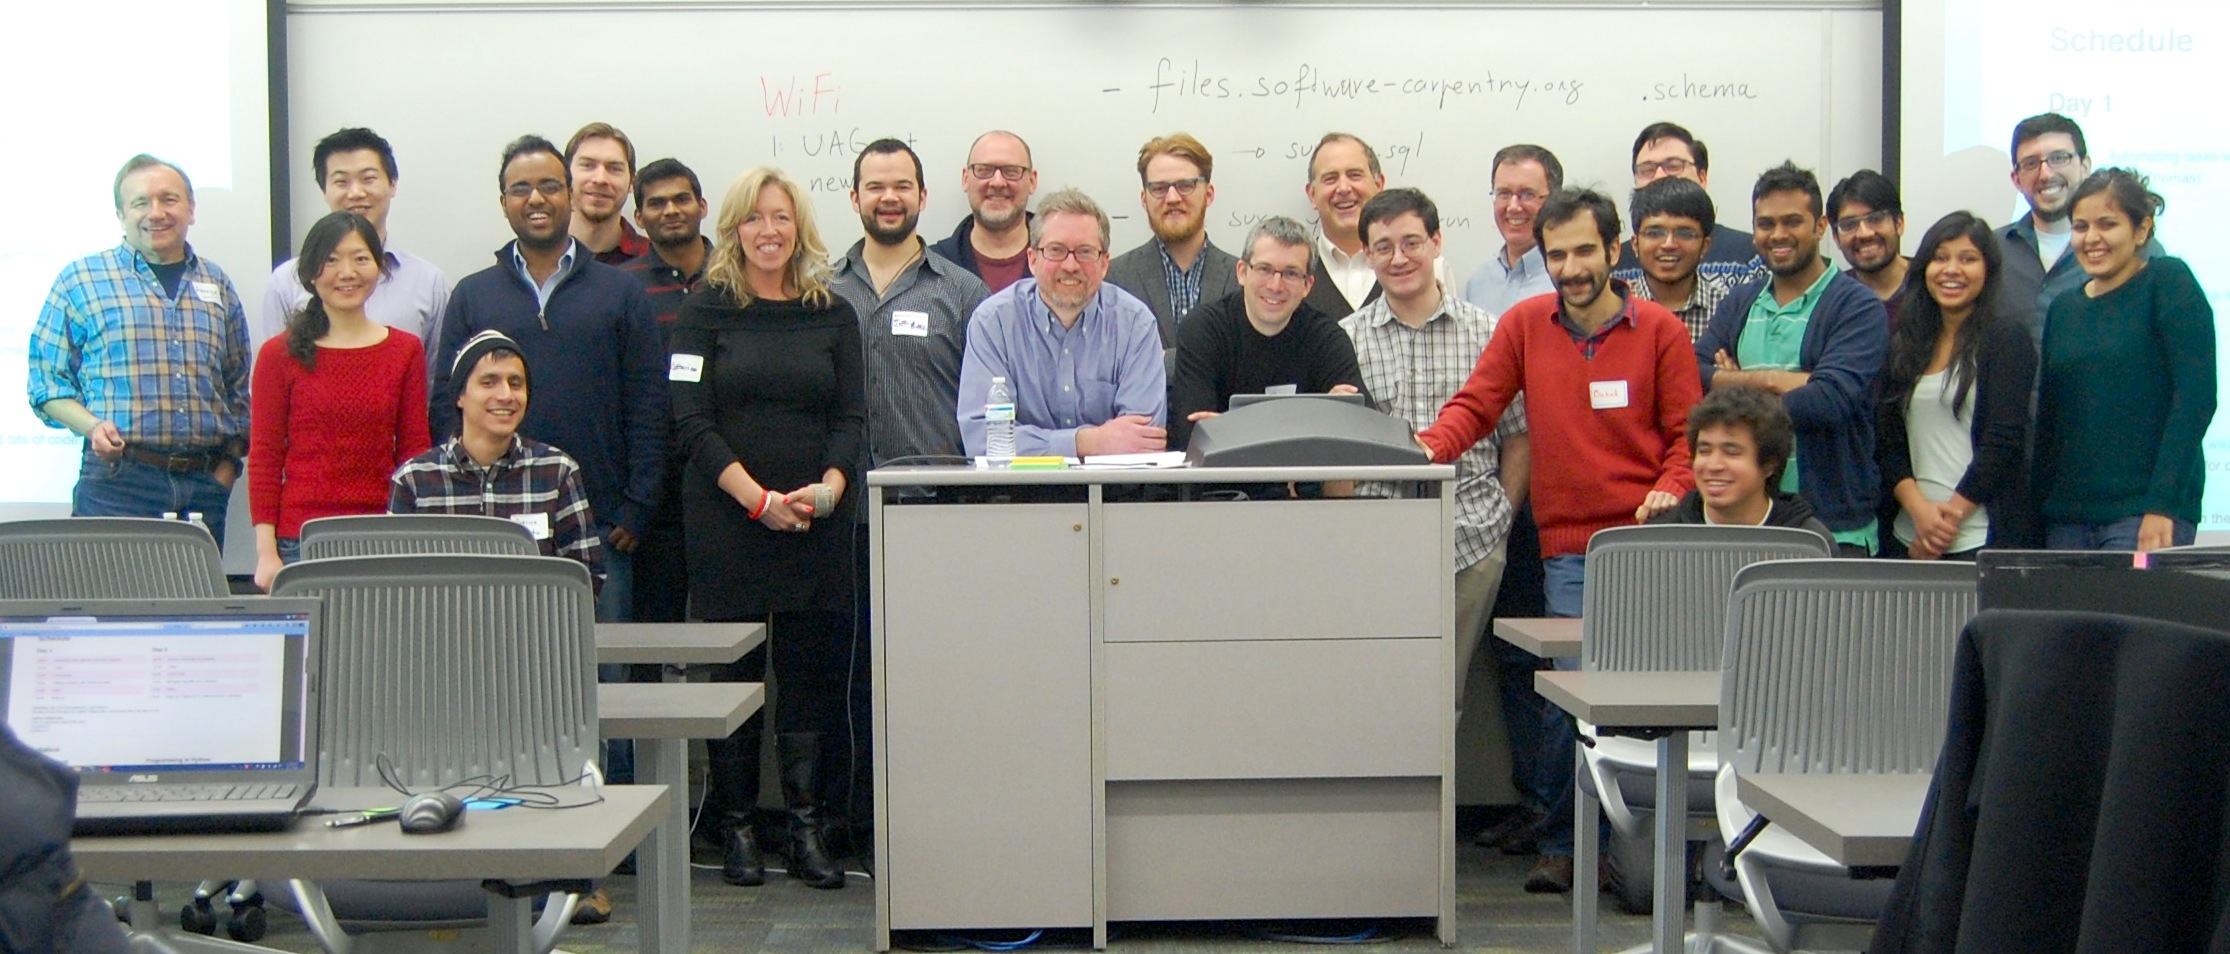 Software Carpentry Workshop attendees at UAlbany Jan 31-Feb 1, 2015